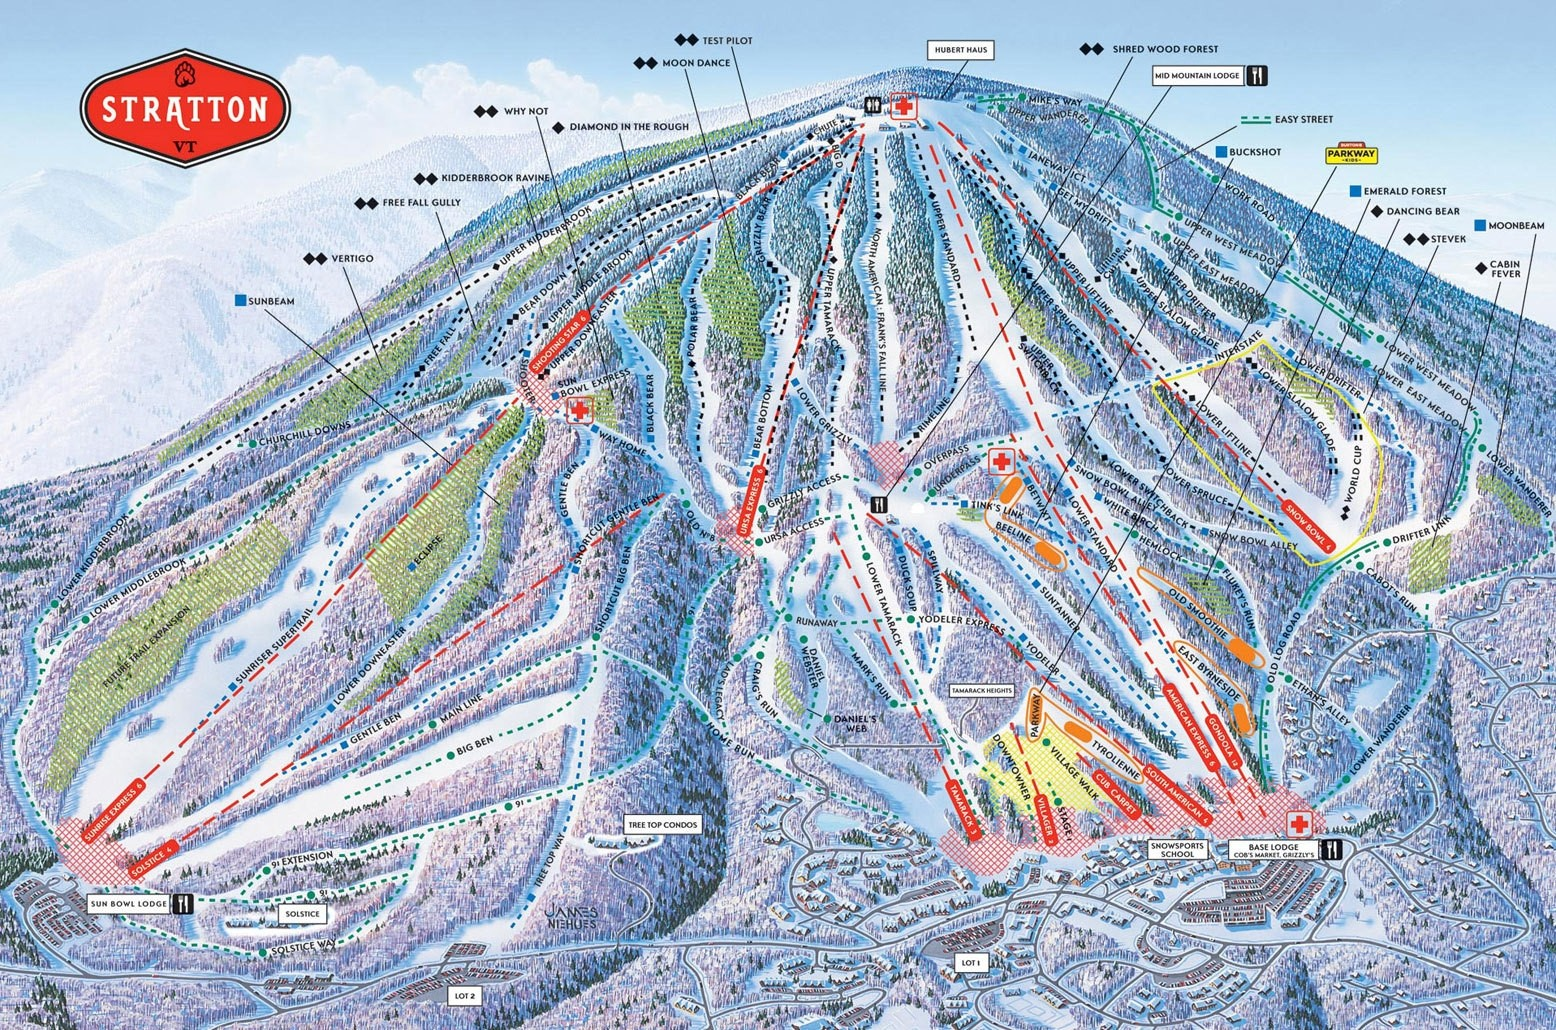 lifts. stratton mountain resort trail map • piste map • panoramic